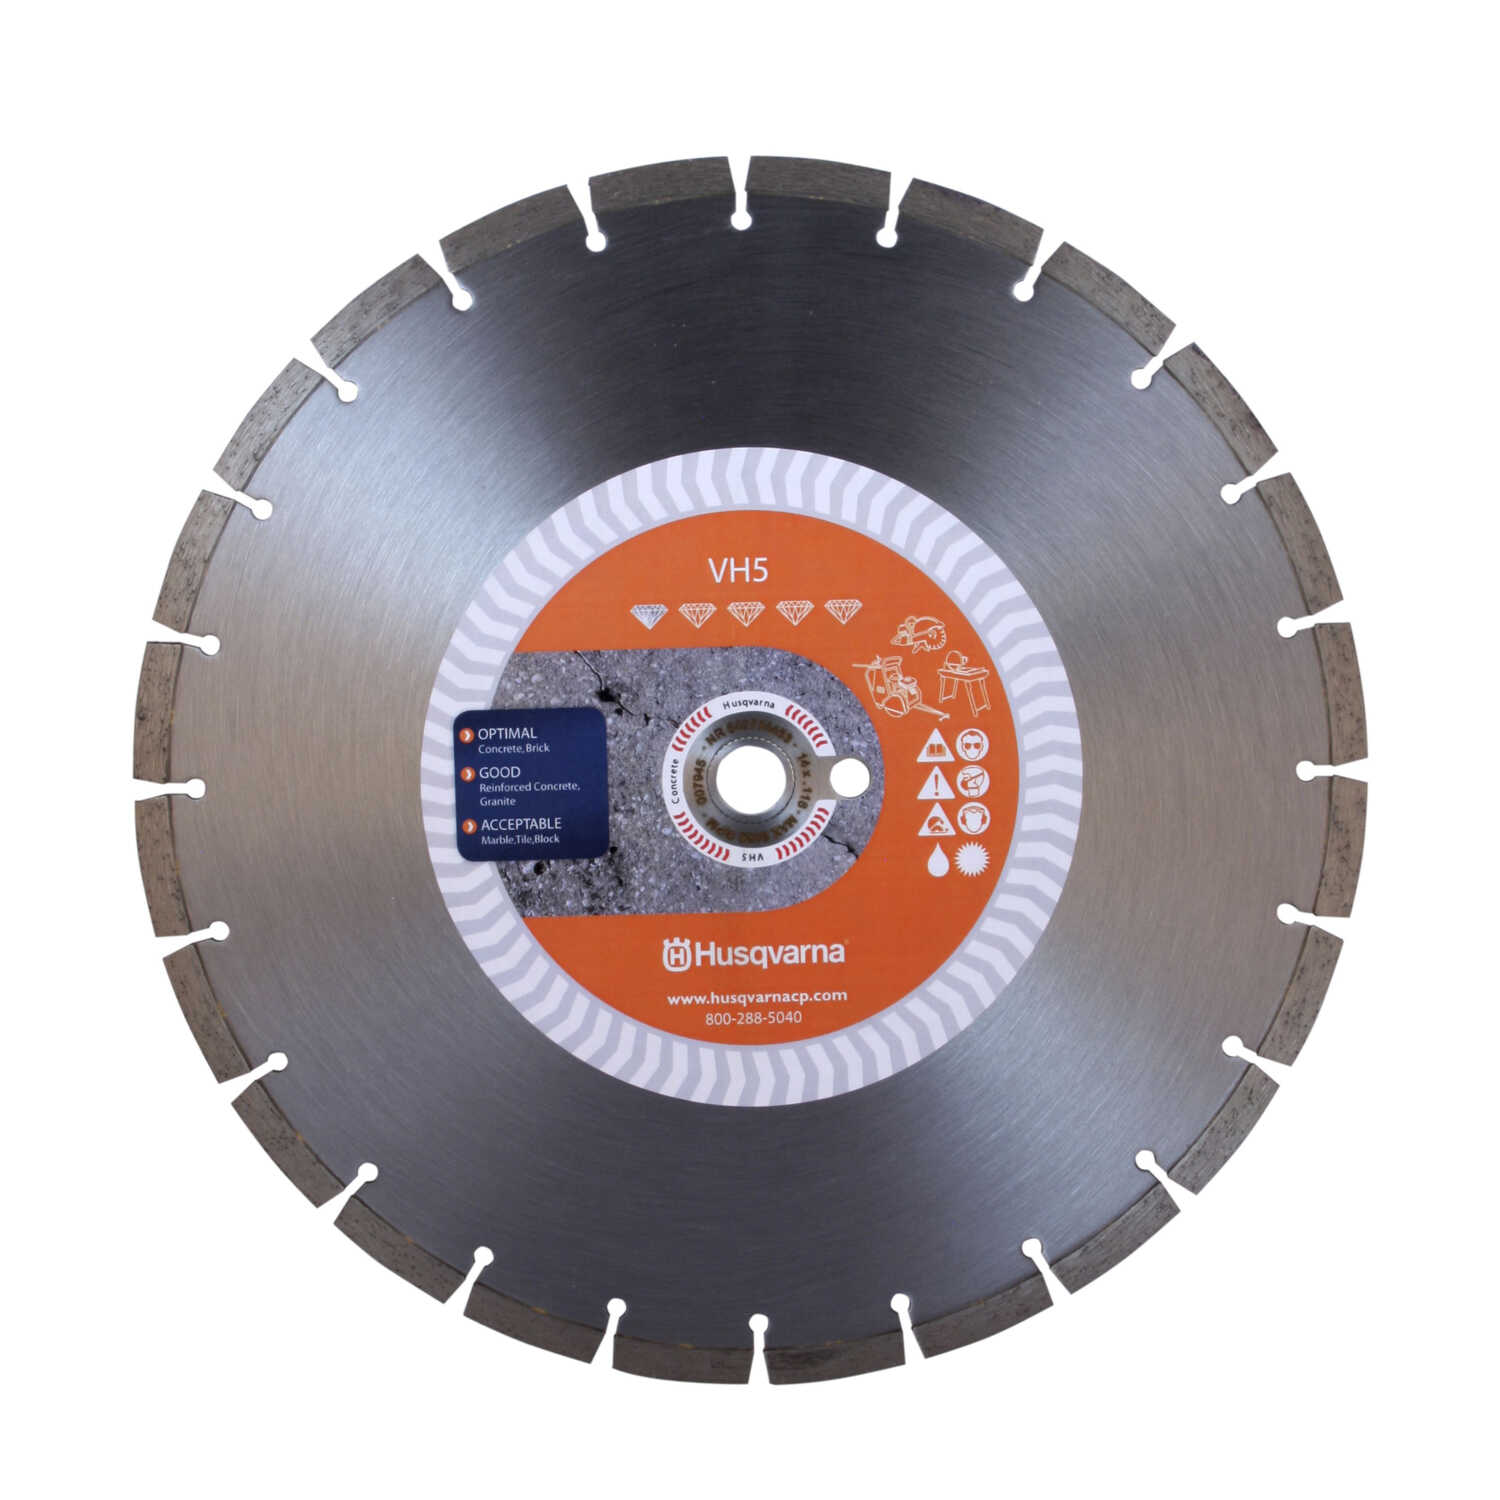 Husqvarna  14 in. Dia. x 1 in./20 mm   VH5  Segmented Rim Saw Blade  Diamond  24 teeth 1 pk